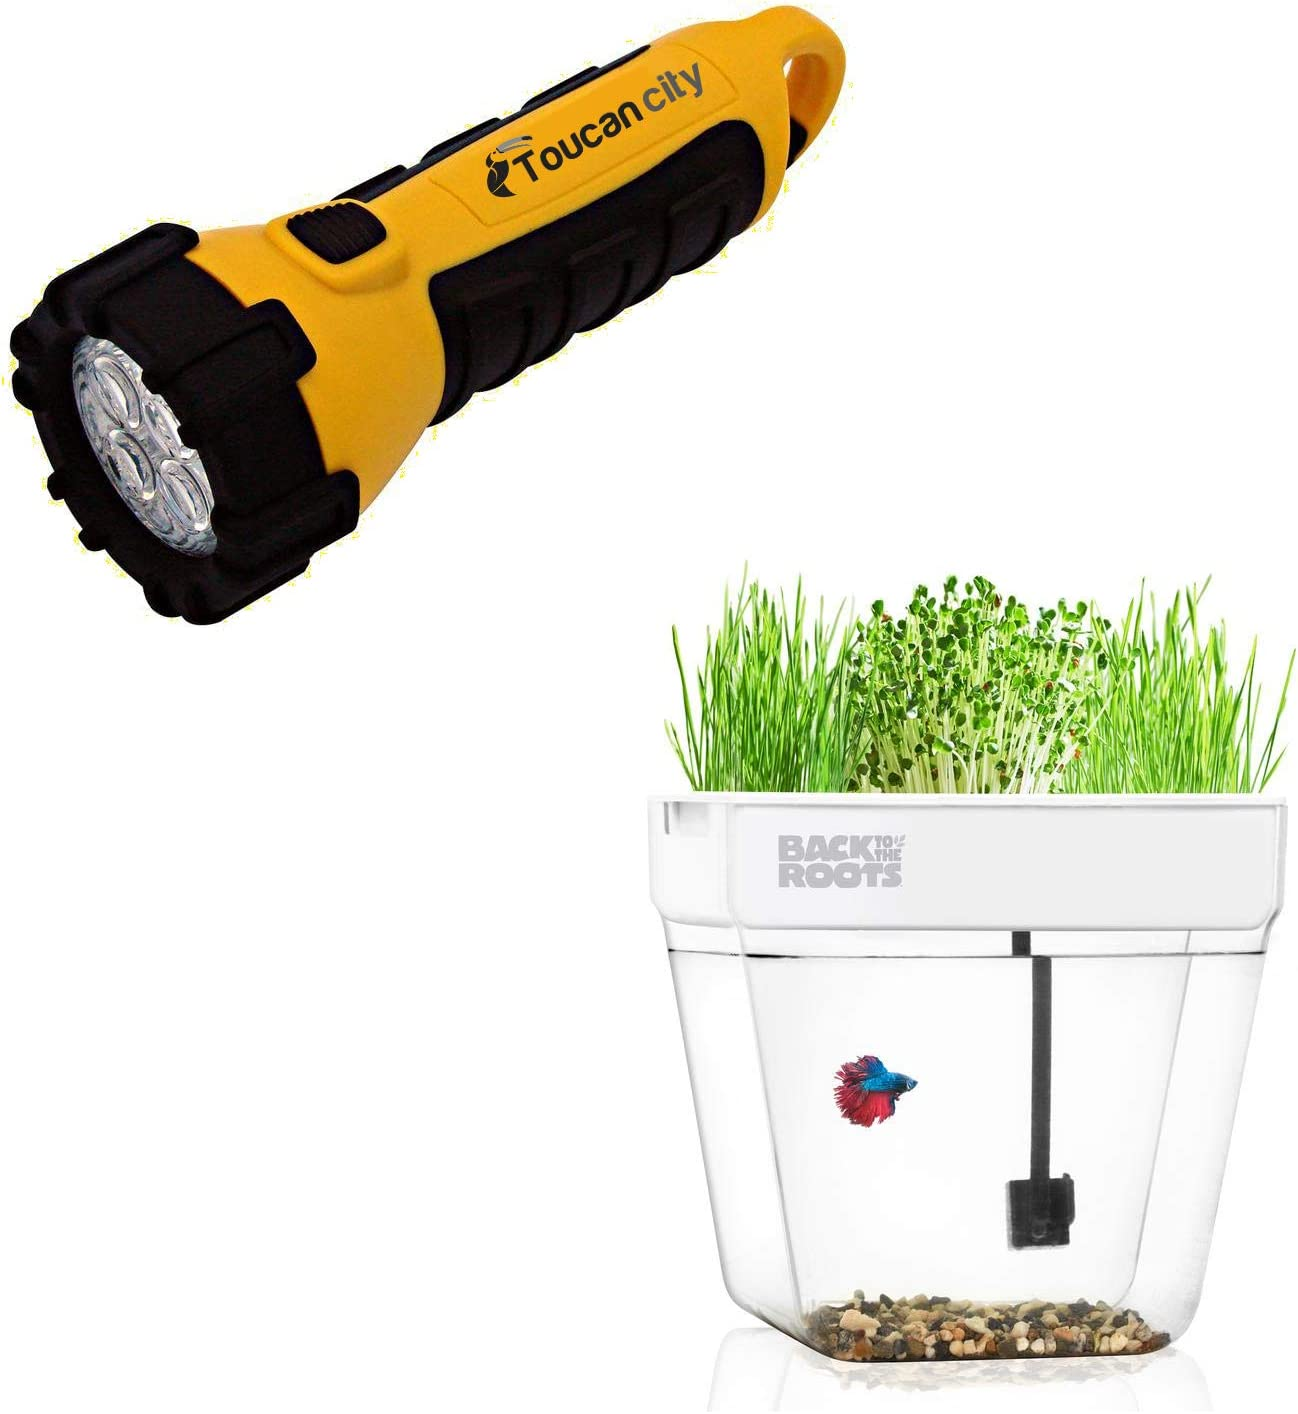 Toucan City LED Flashlight and Back to the Roots Premium Acrylic Water Garden Fish Tank That Grows Food 32000